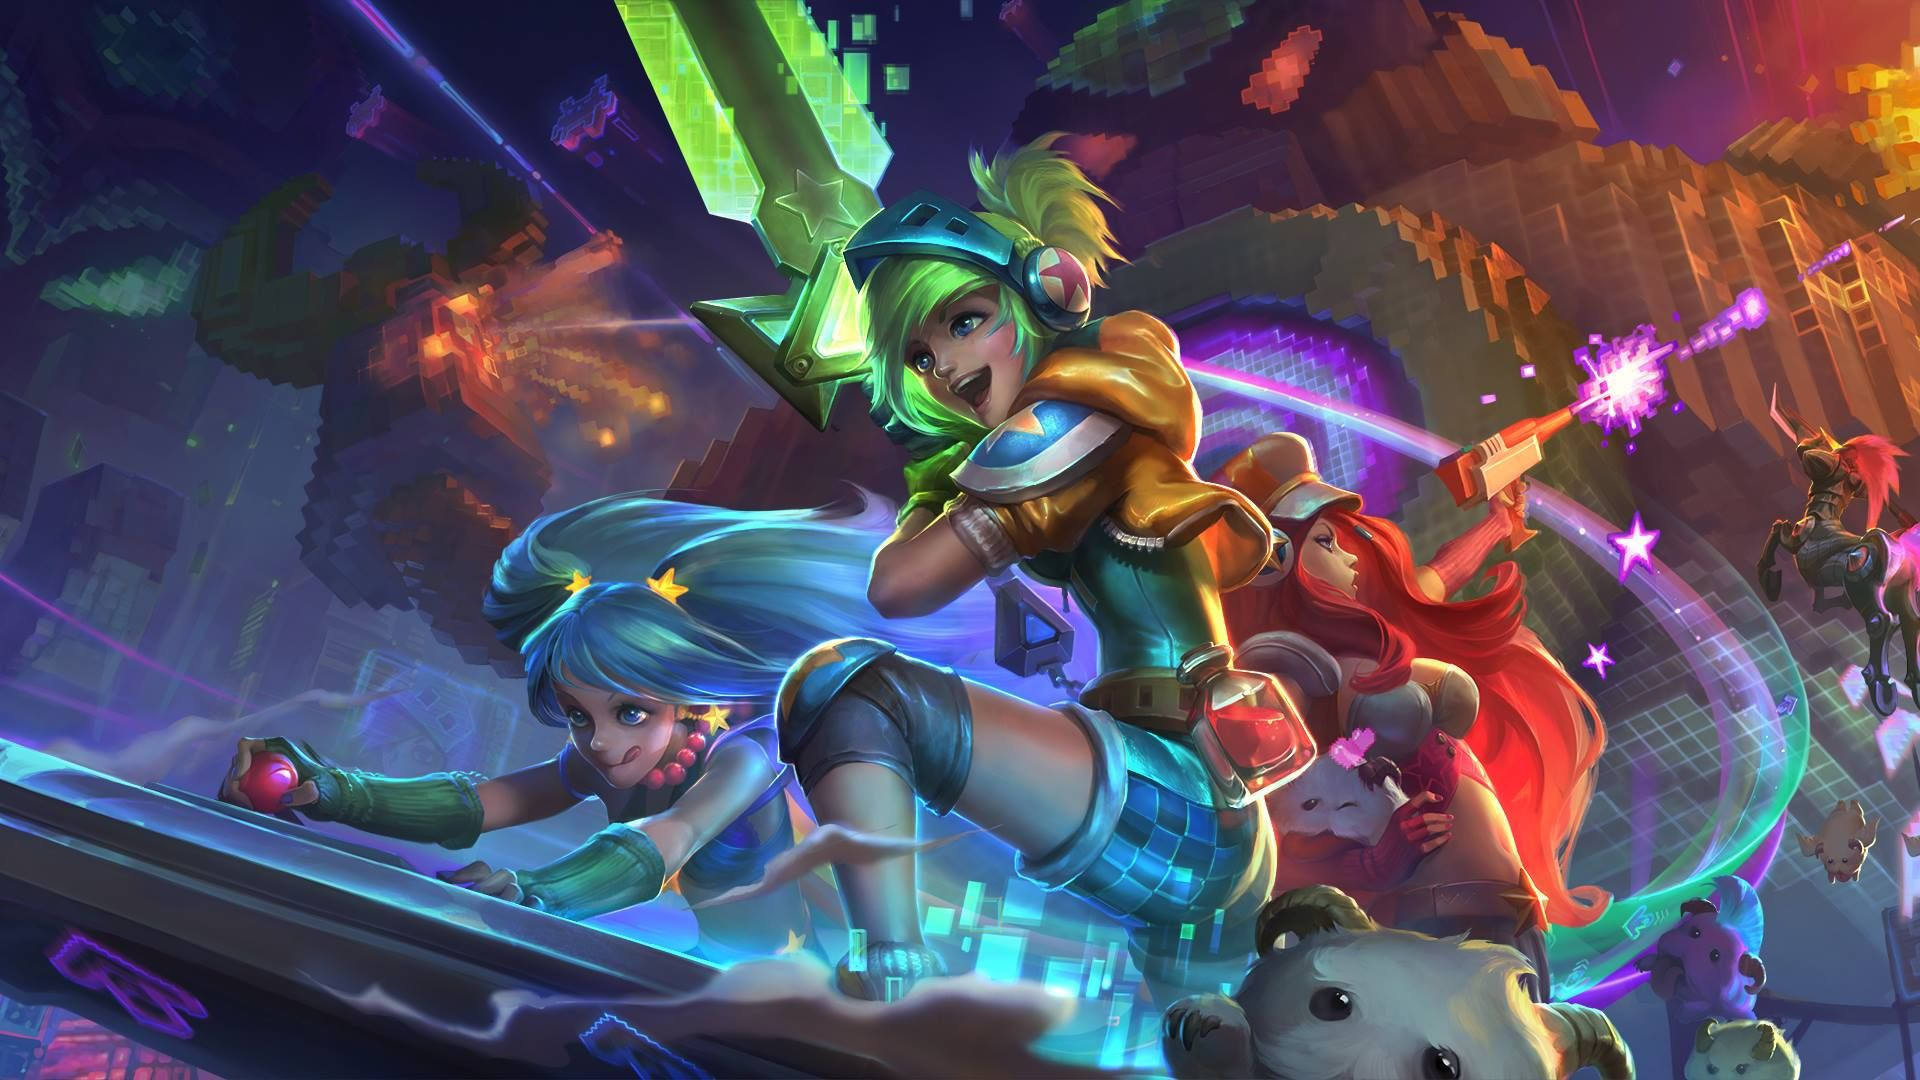 Arcade Skins Hd Wallpaper 1920x1080 Id56157 Play